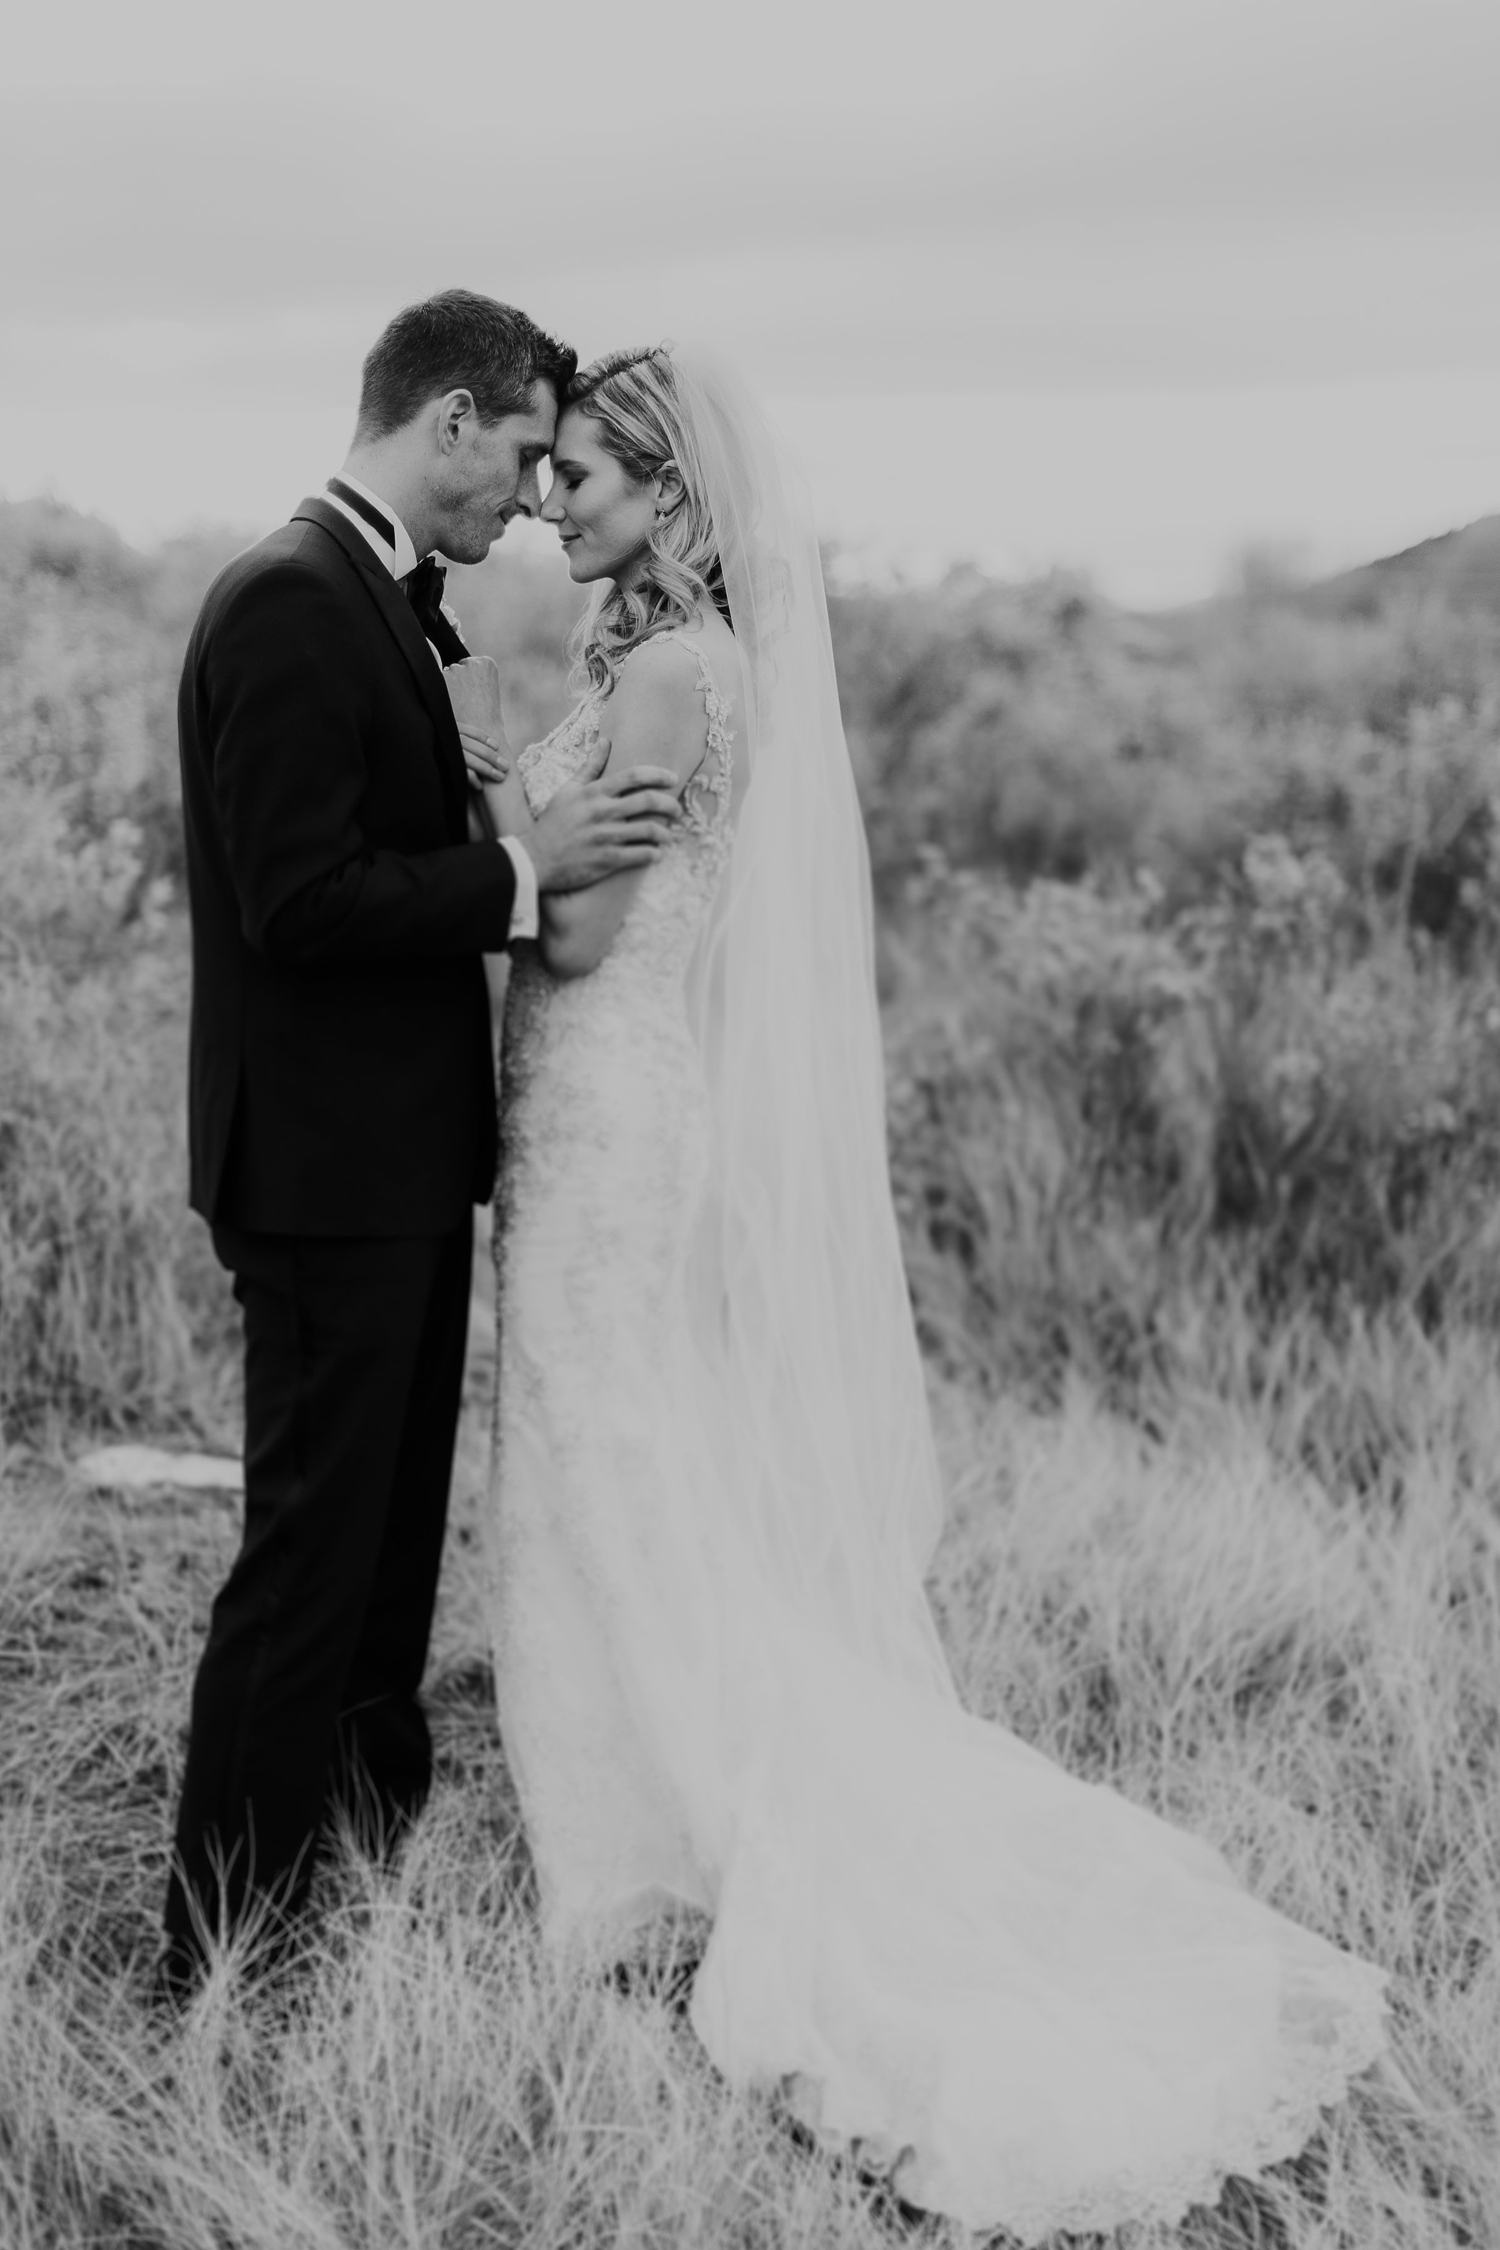 Alicia+lucia+photography+-+albuquerque+wedding+photographer+-+santa+fe+wedding+photography+-+new+mexico+wedding+photographer+-+la+fonda+wedding+-+la+fonda+winter+wedding_0086.jpg